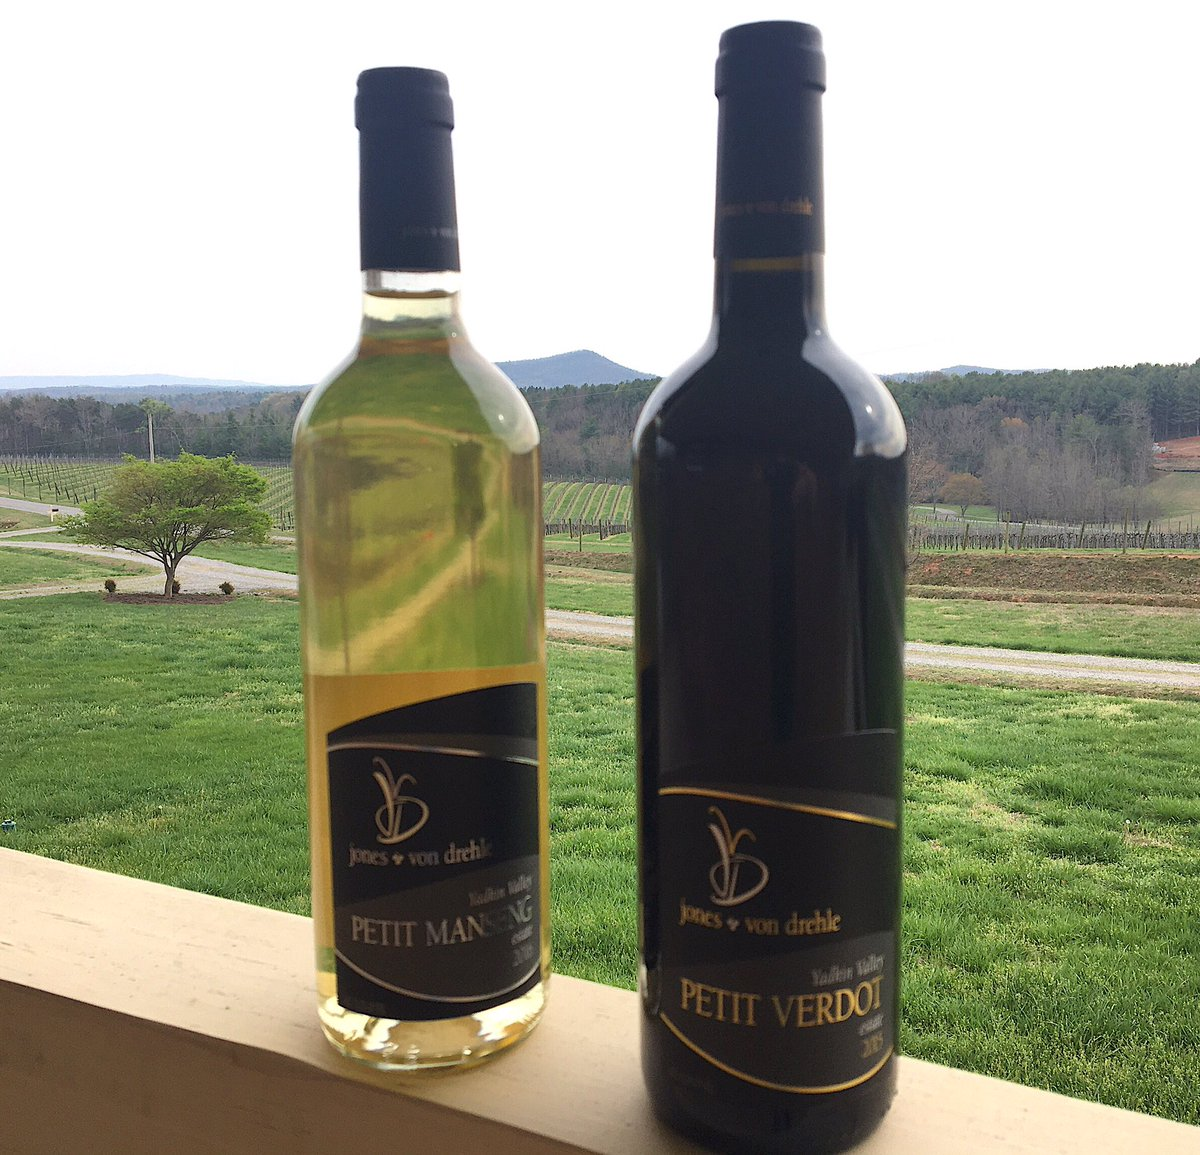 #petit Manseng & #petitverdot for #openlocalwine night. Shout out to our wine maker Dan Tallman & to @TheCorkReport, @DrinkWhatULike, @Ncwineguys & everyone else promoting local wineries. #ncwine #supportlocal #supportsmallbusiness #yadkinvalley